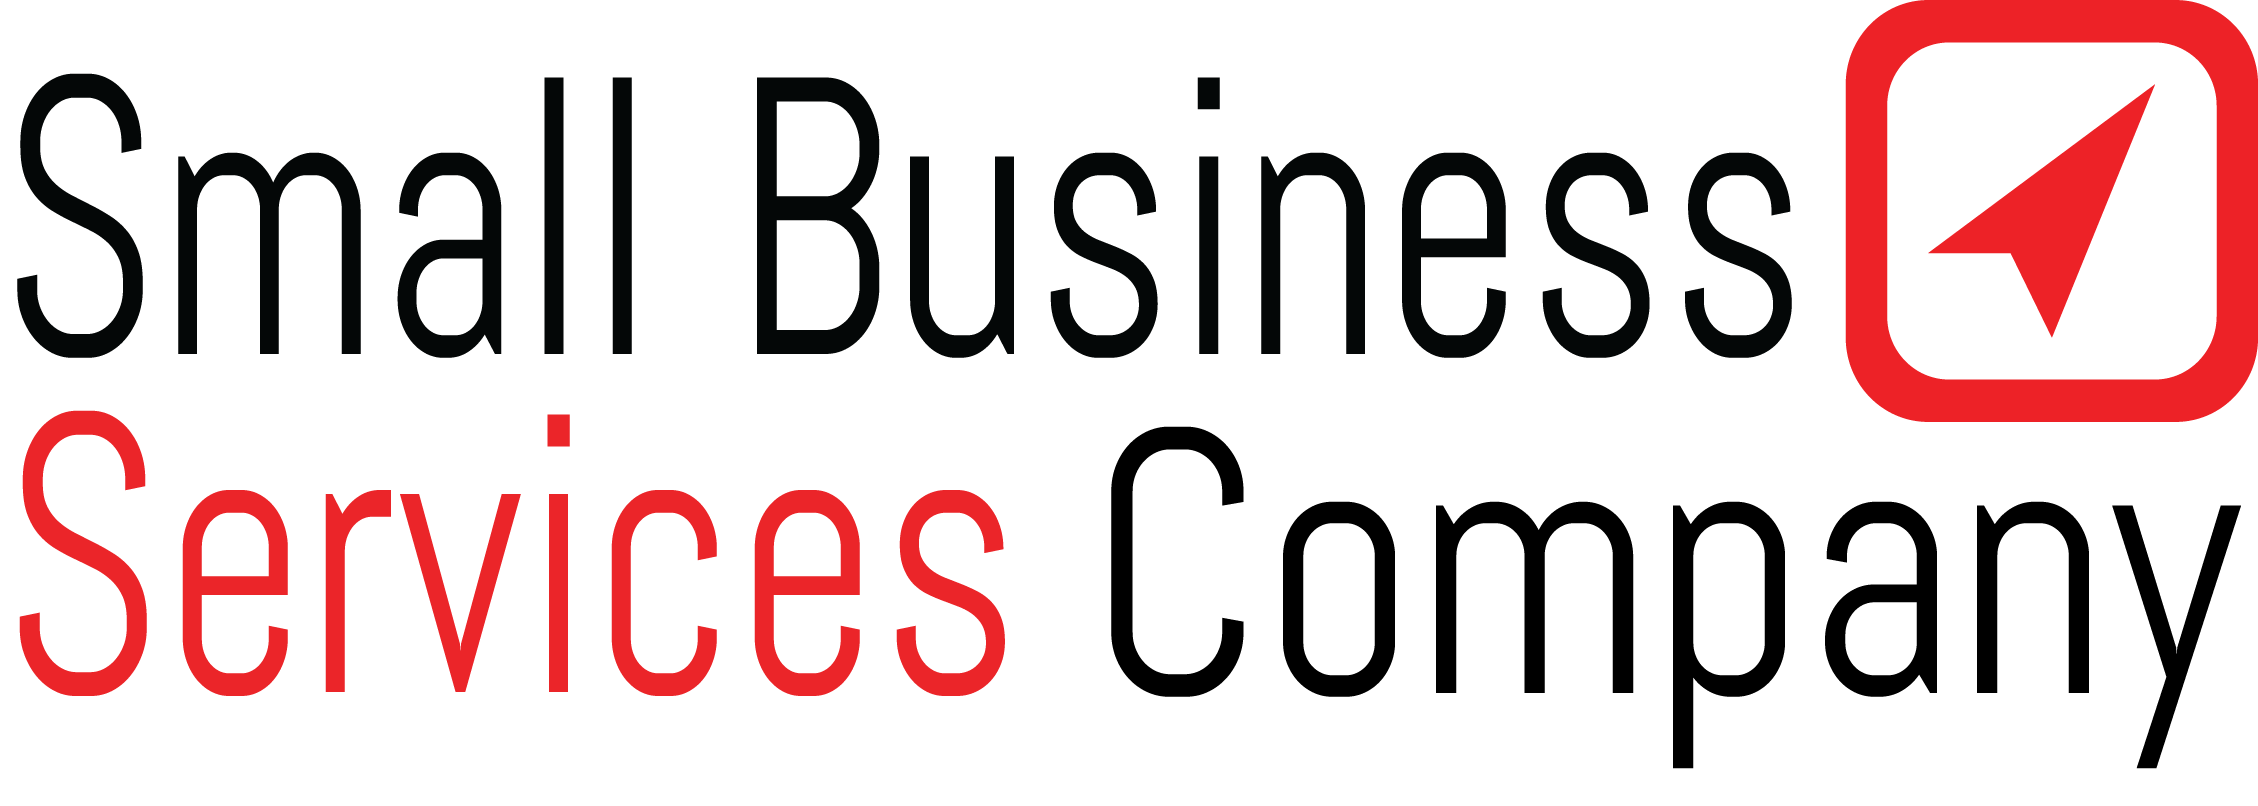 Small Business Services Company